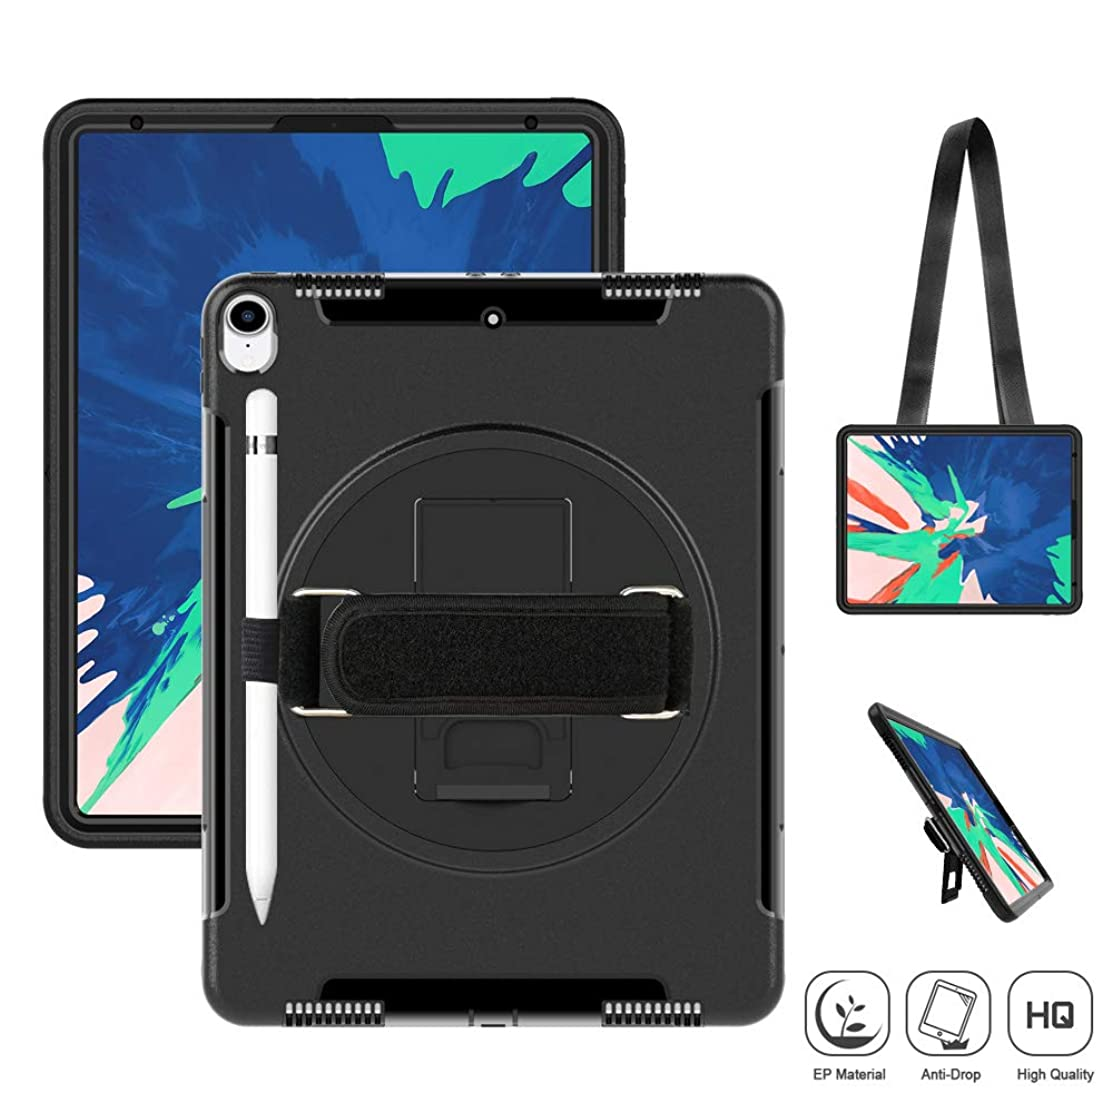 SUPFIVES iPad Pro 12.9 (3rd Generation) 2018 Case, Heavy Duty Case with Stand+Hand Strap+Shoulder Strap+Pencil Holder Shockproof Durable Case for Newest iPad pro 12.9 inch 2018 Released (Black)